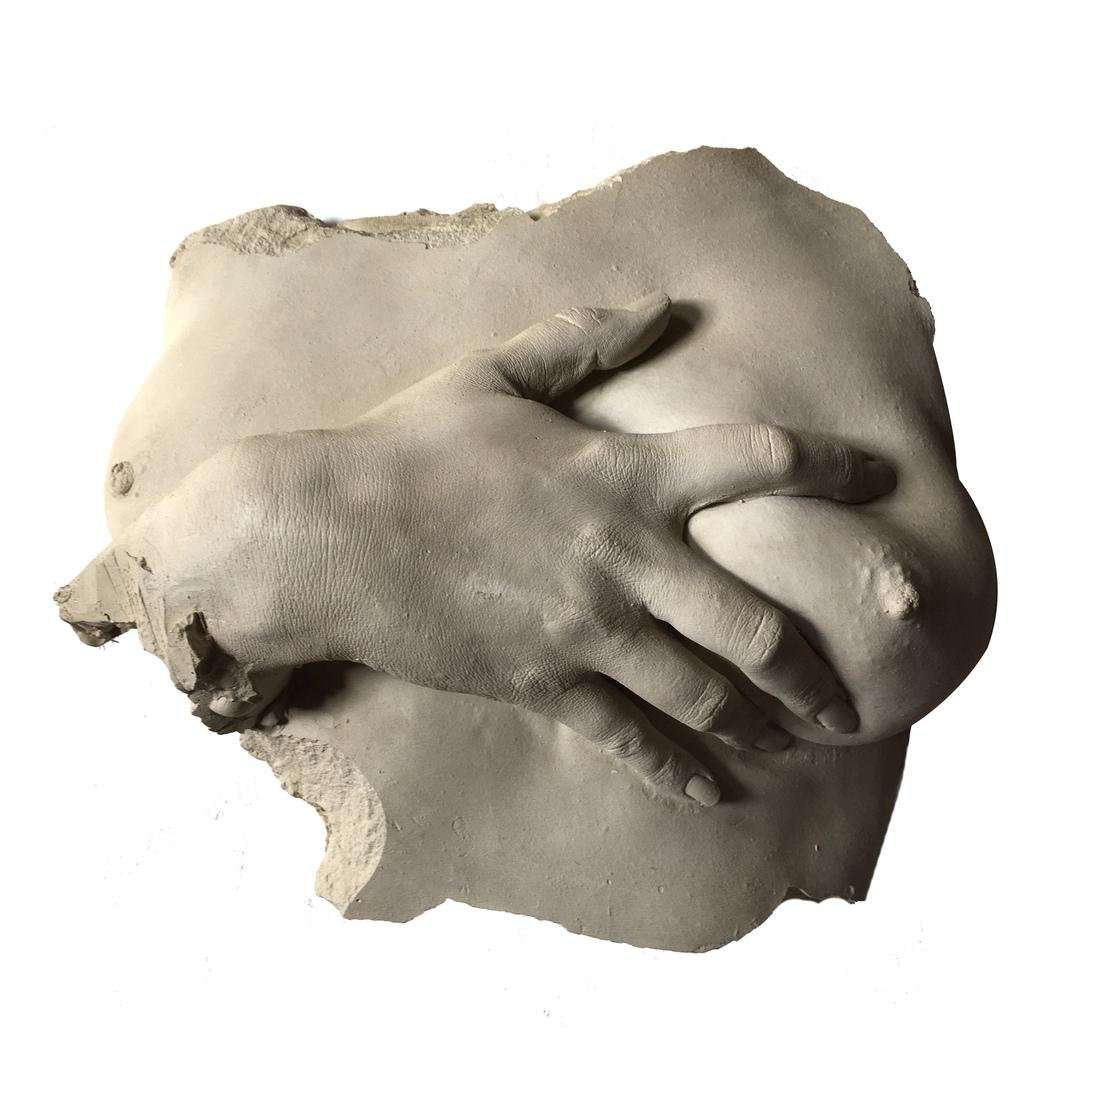 Ben Bianchi, Woman's Hand on Breast